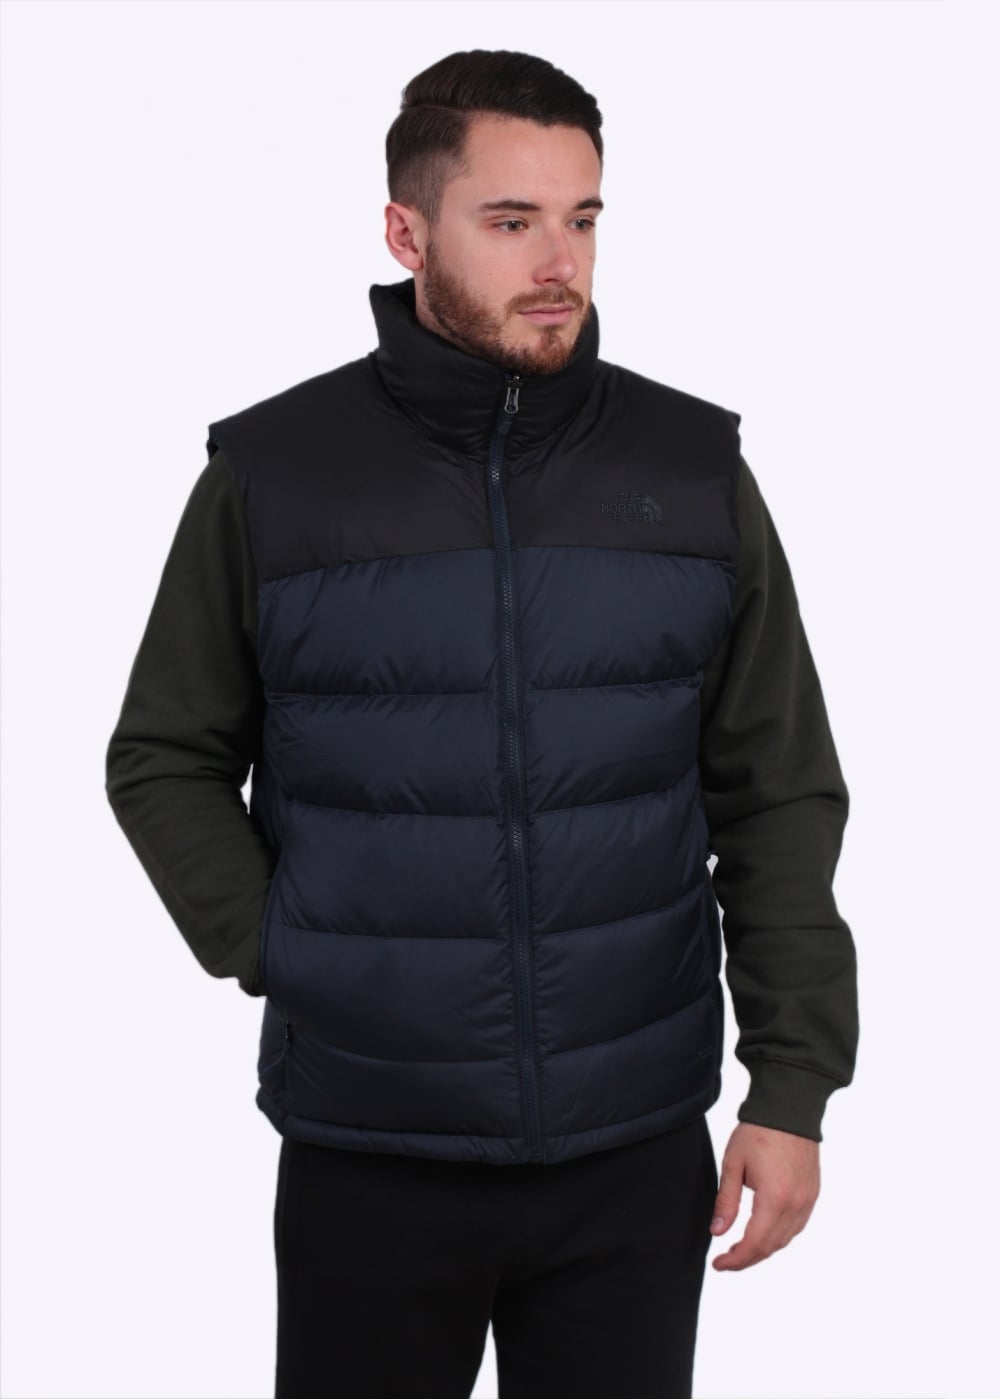 08ddacf2a The North Face Nuptse 2 Vest - Urban Navy